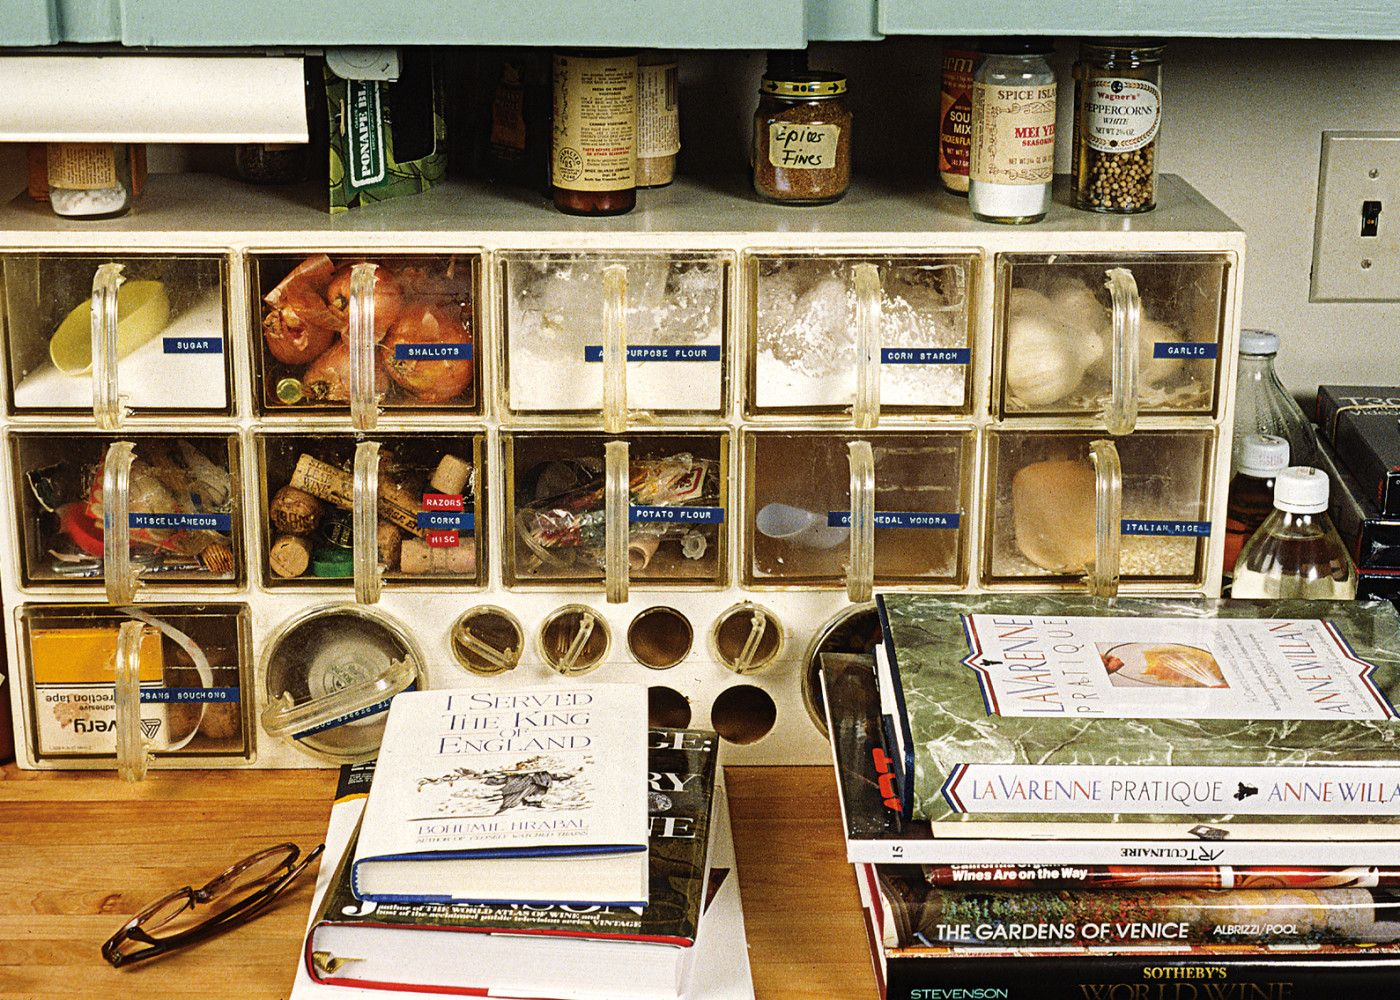 inside julia child's *actual* home kitchen | kitchens, tiny